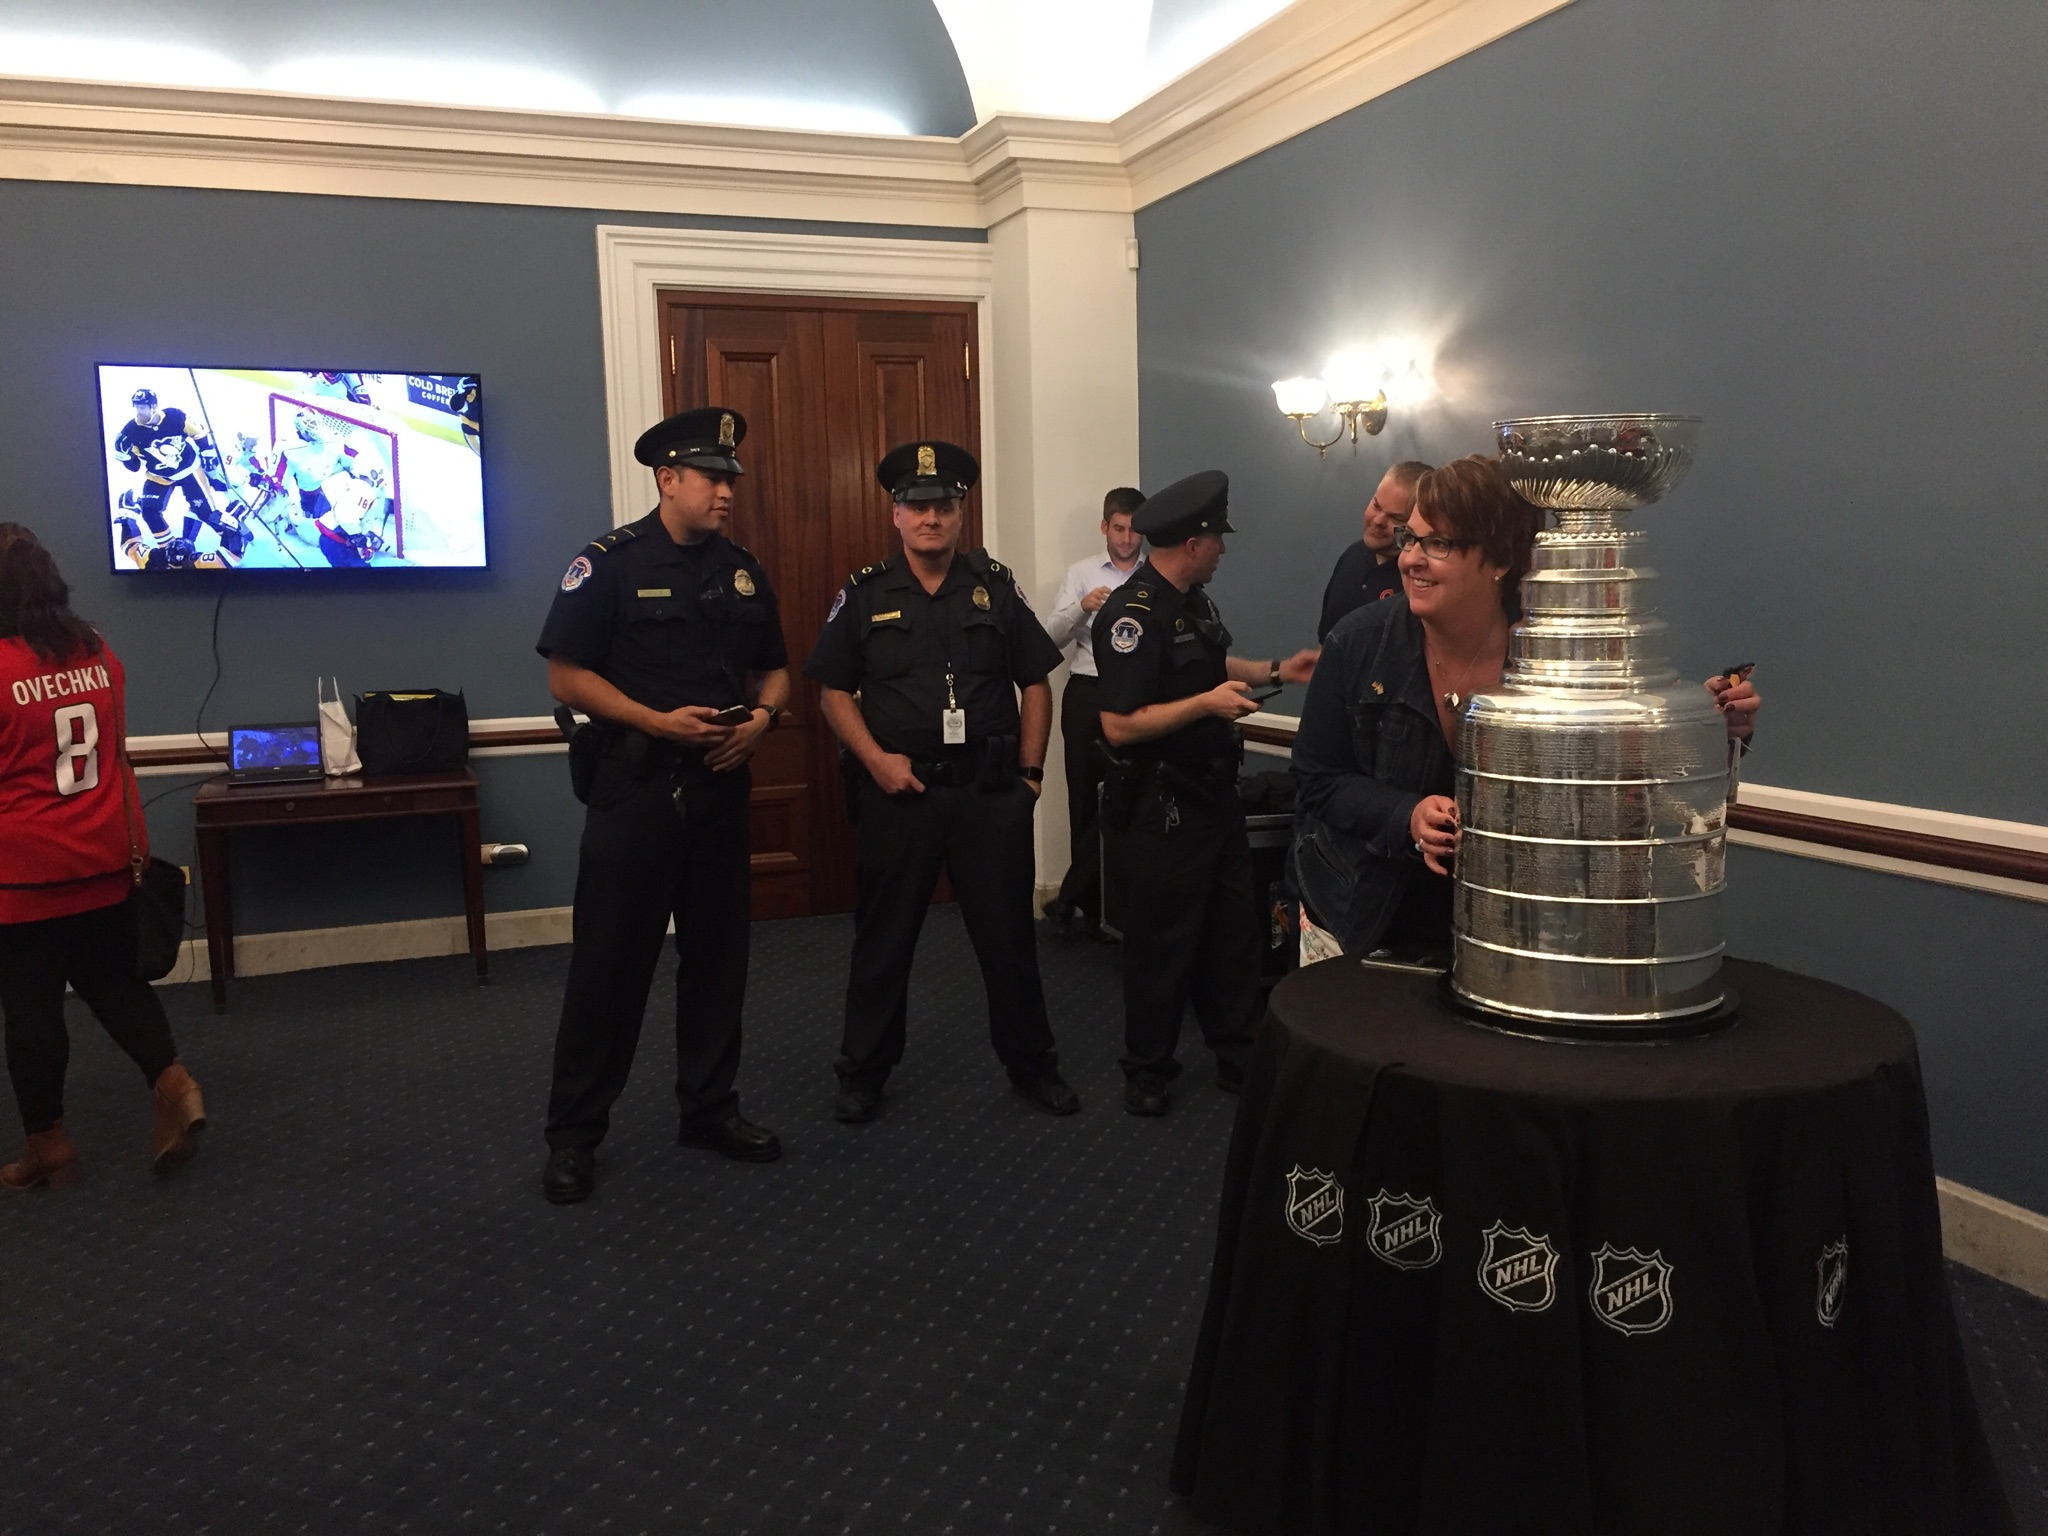 A television screen played Washington Capitals' highlights while the Cup sat in the Capitol. (Alex Gangitano/CQ Roll Call)